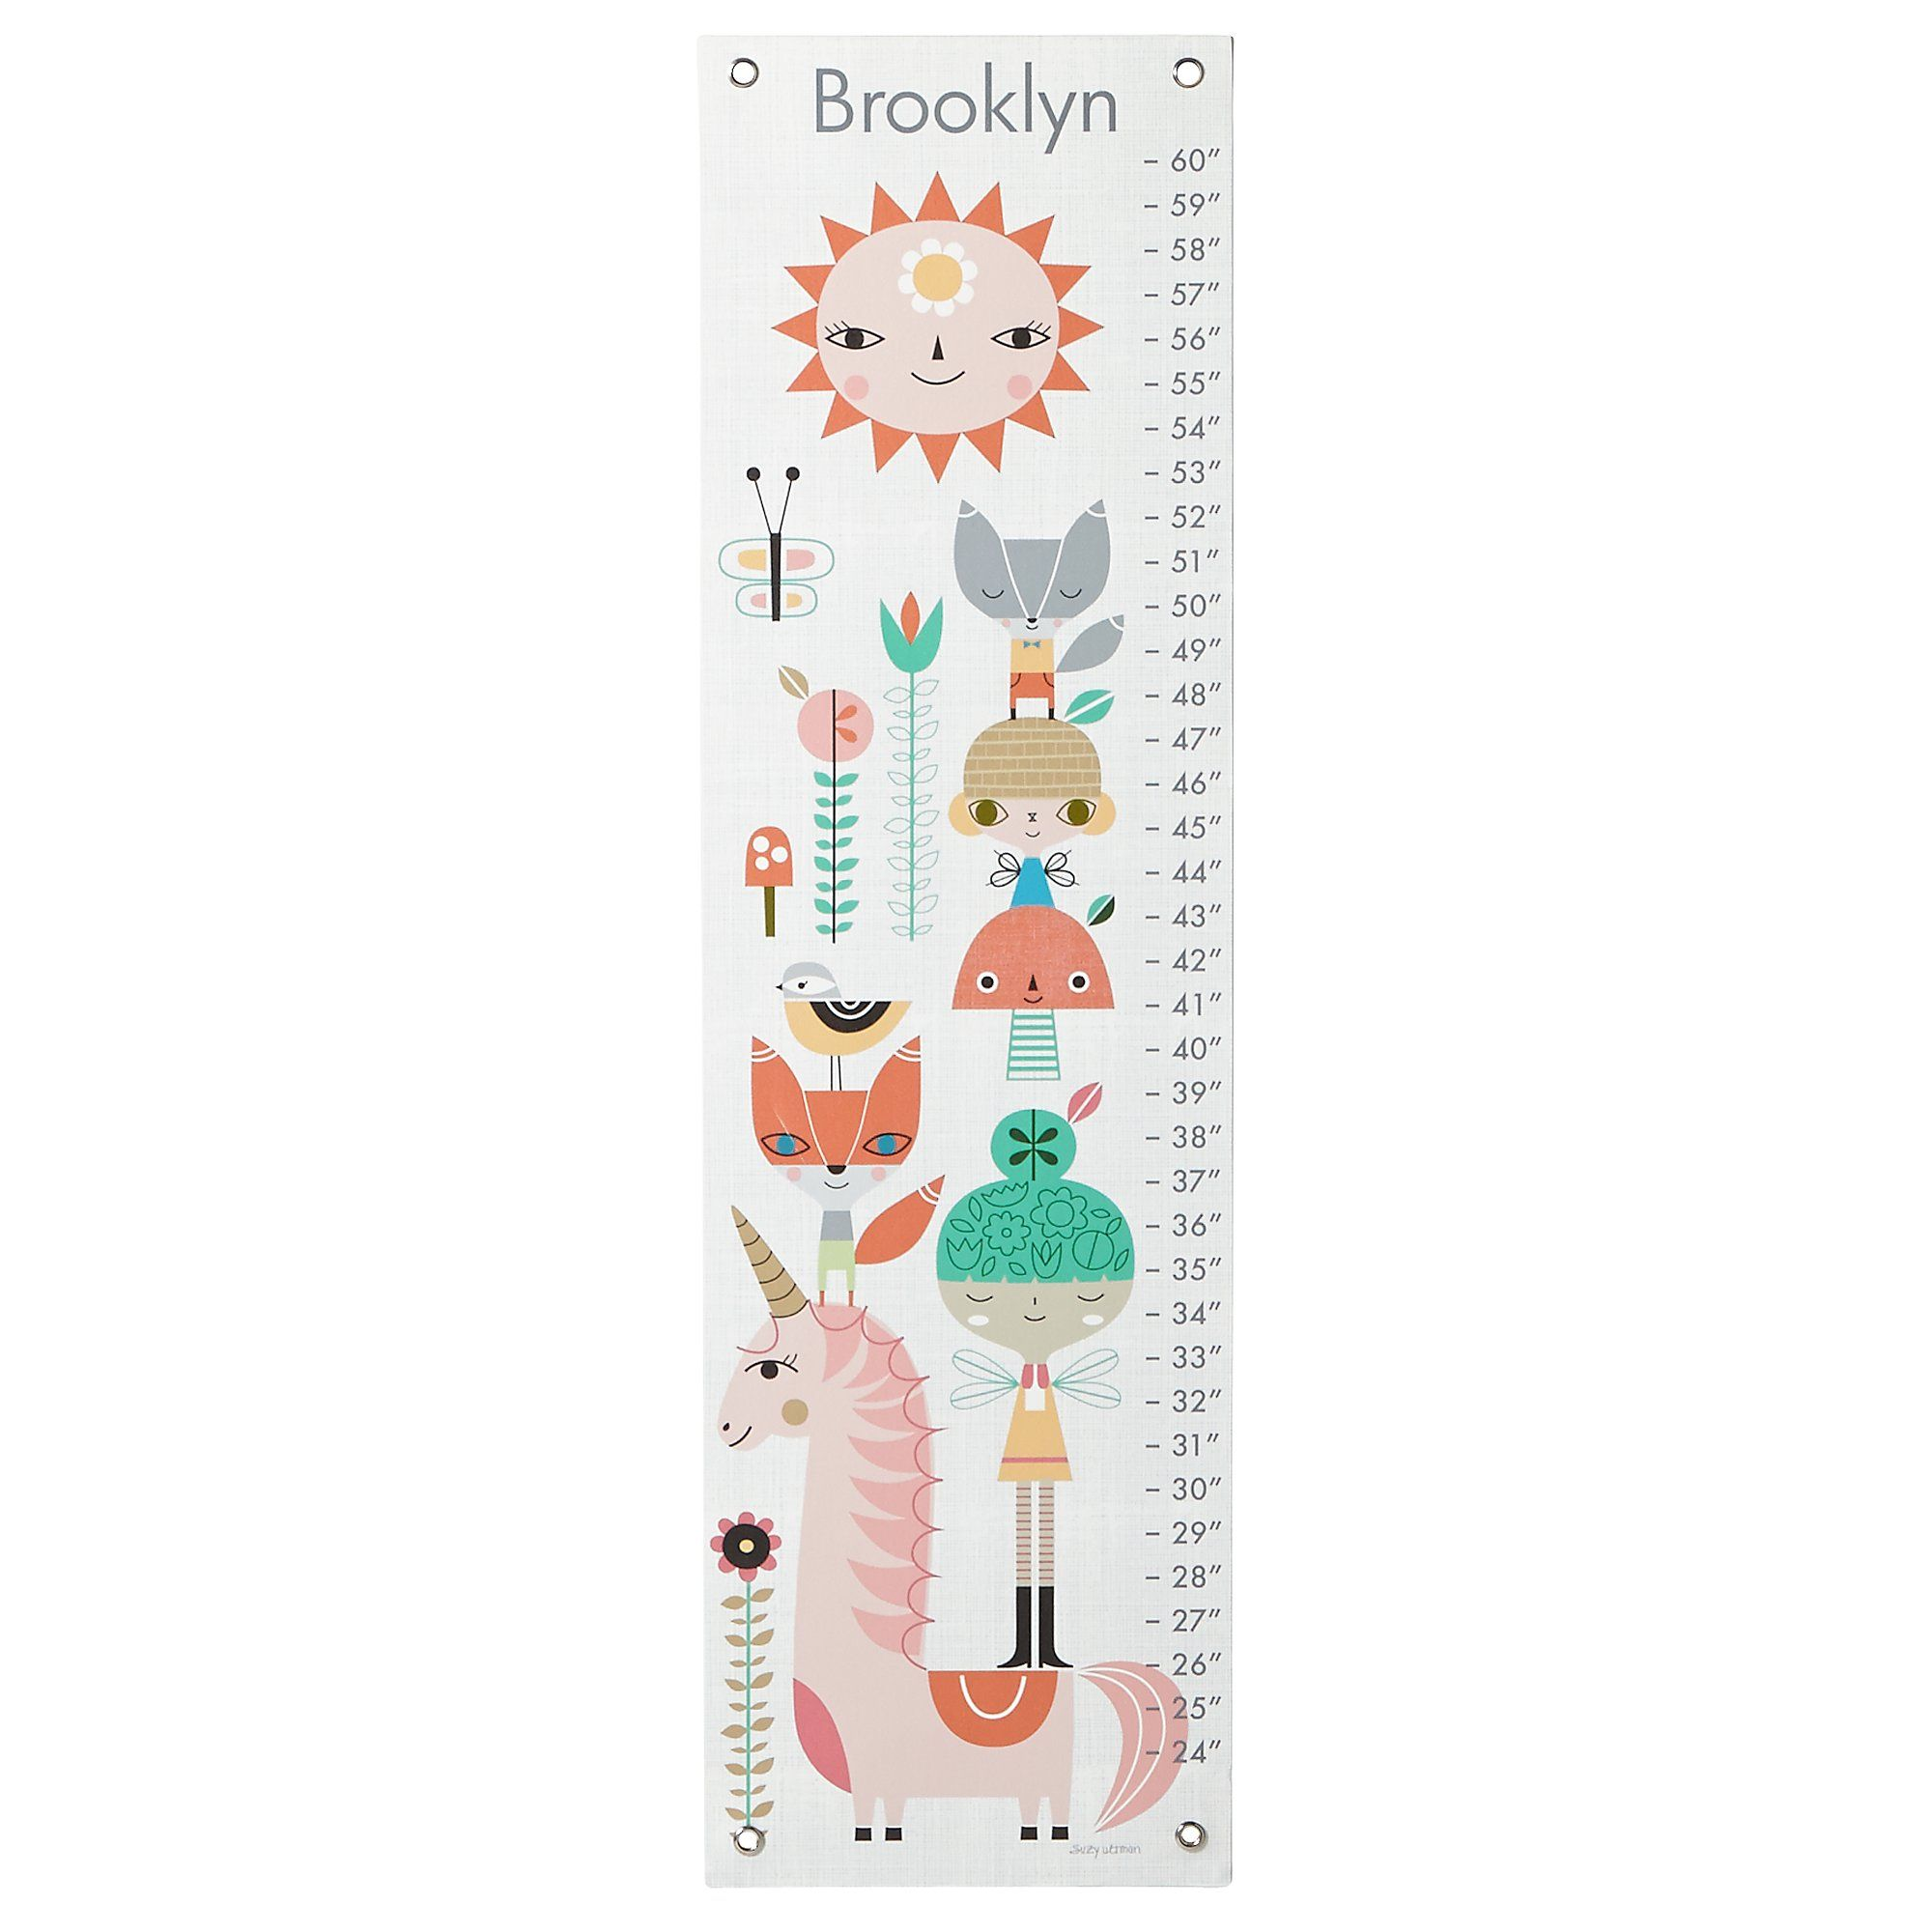 This Growth Chart Is Chock Full Of Fairies And Storybook Creatures